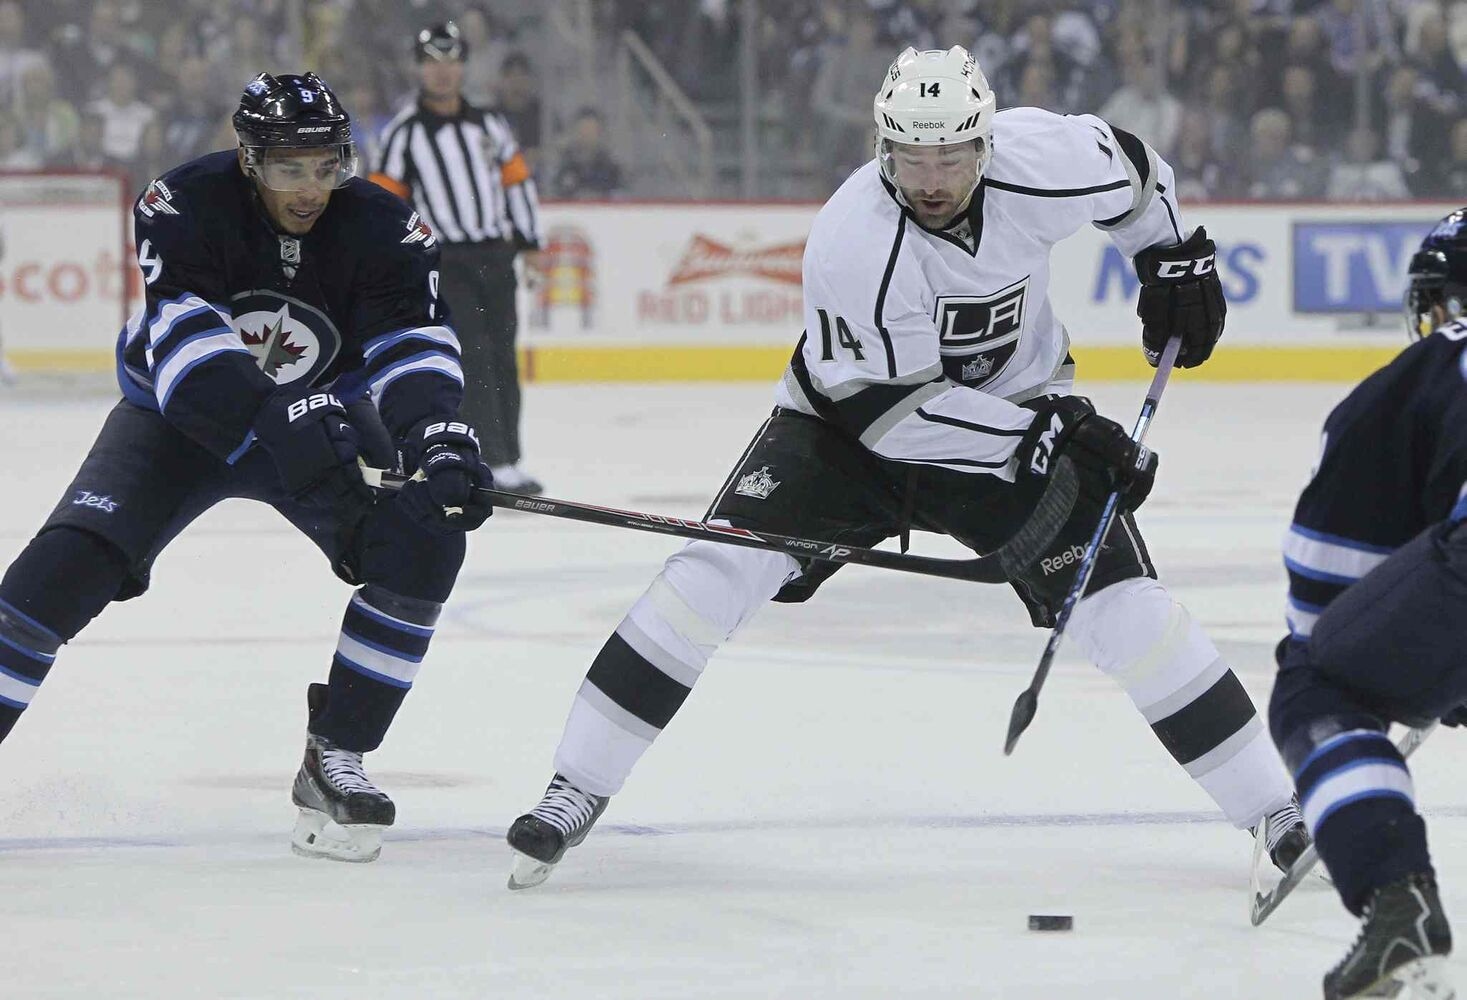 Winnipeg Jets' Evander Kane (9) tries to slow down Los Angeles Kings' Justin Williams (14) in the first period. (MIKE DEAL / WINNIPEG FREE PRESS)